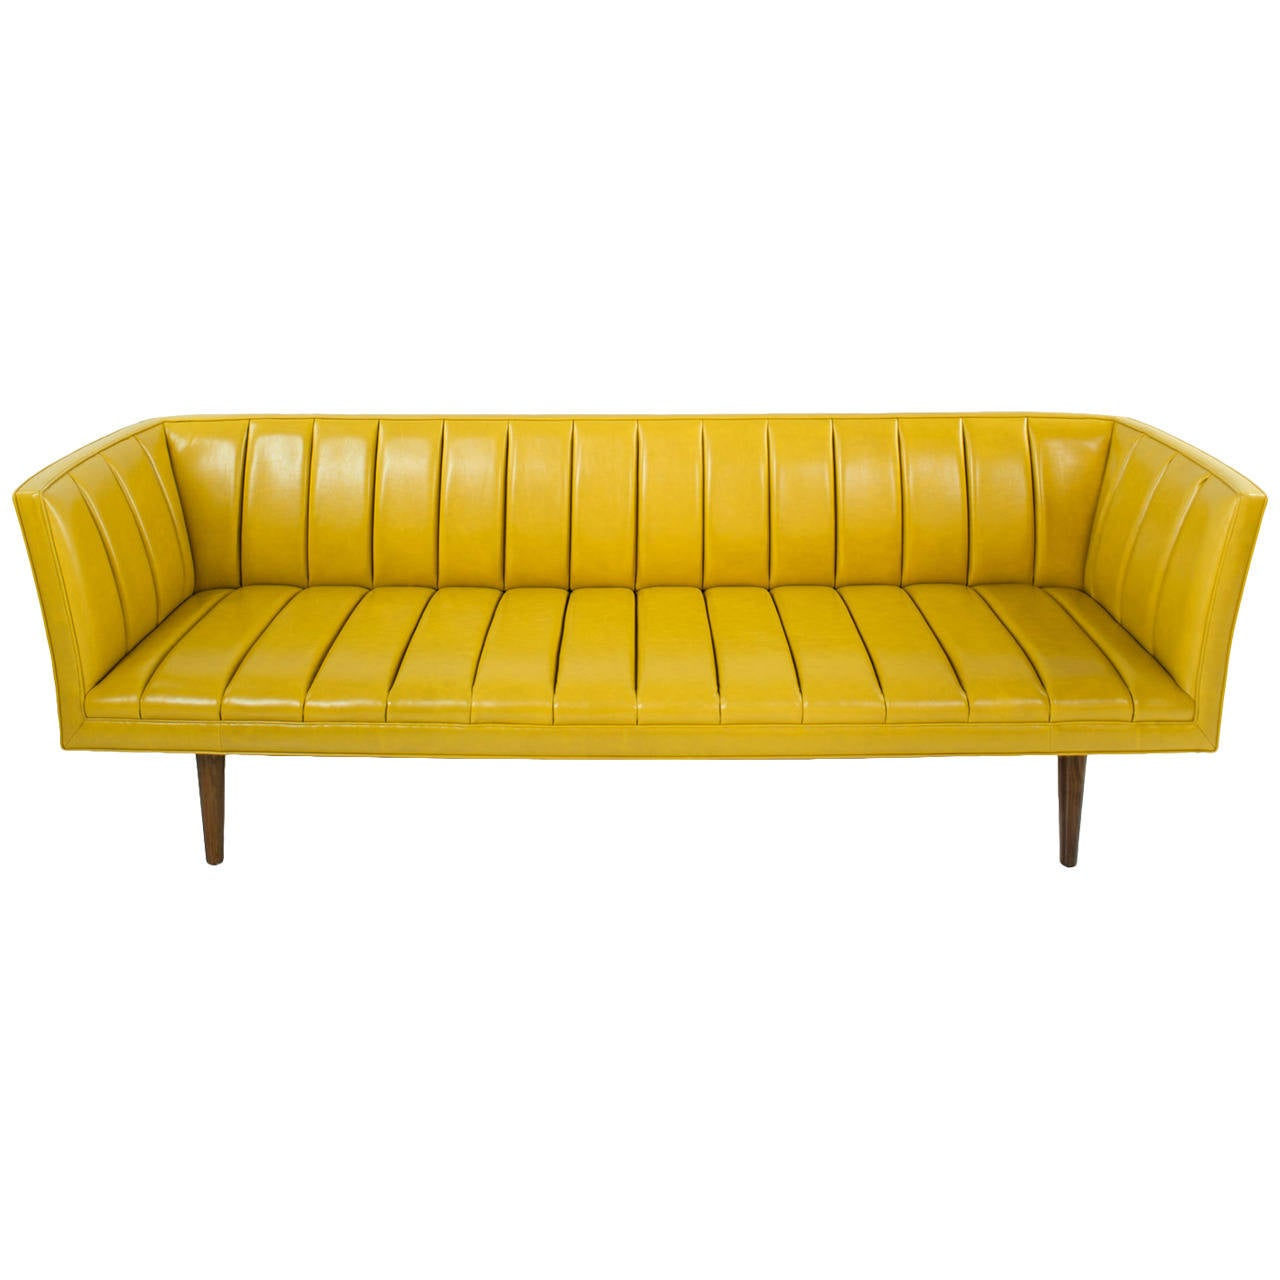 Famechon Sofa with Channeled Back and Seat, Walnut Legs, Yellow Leather